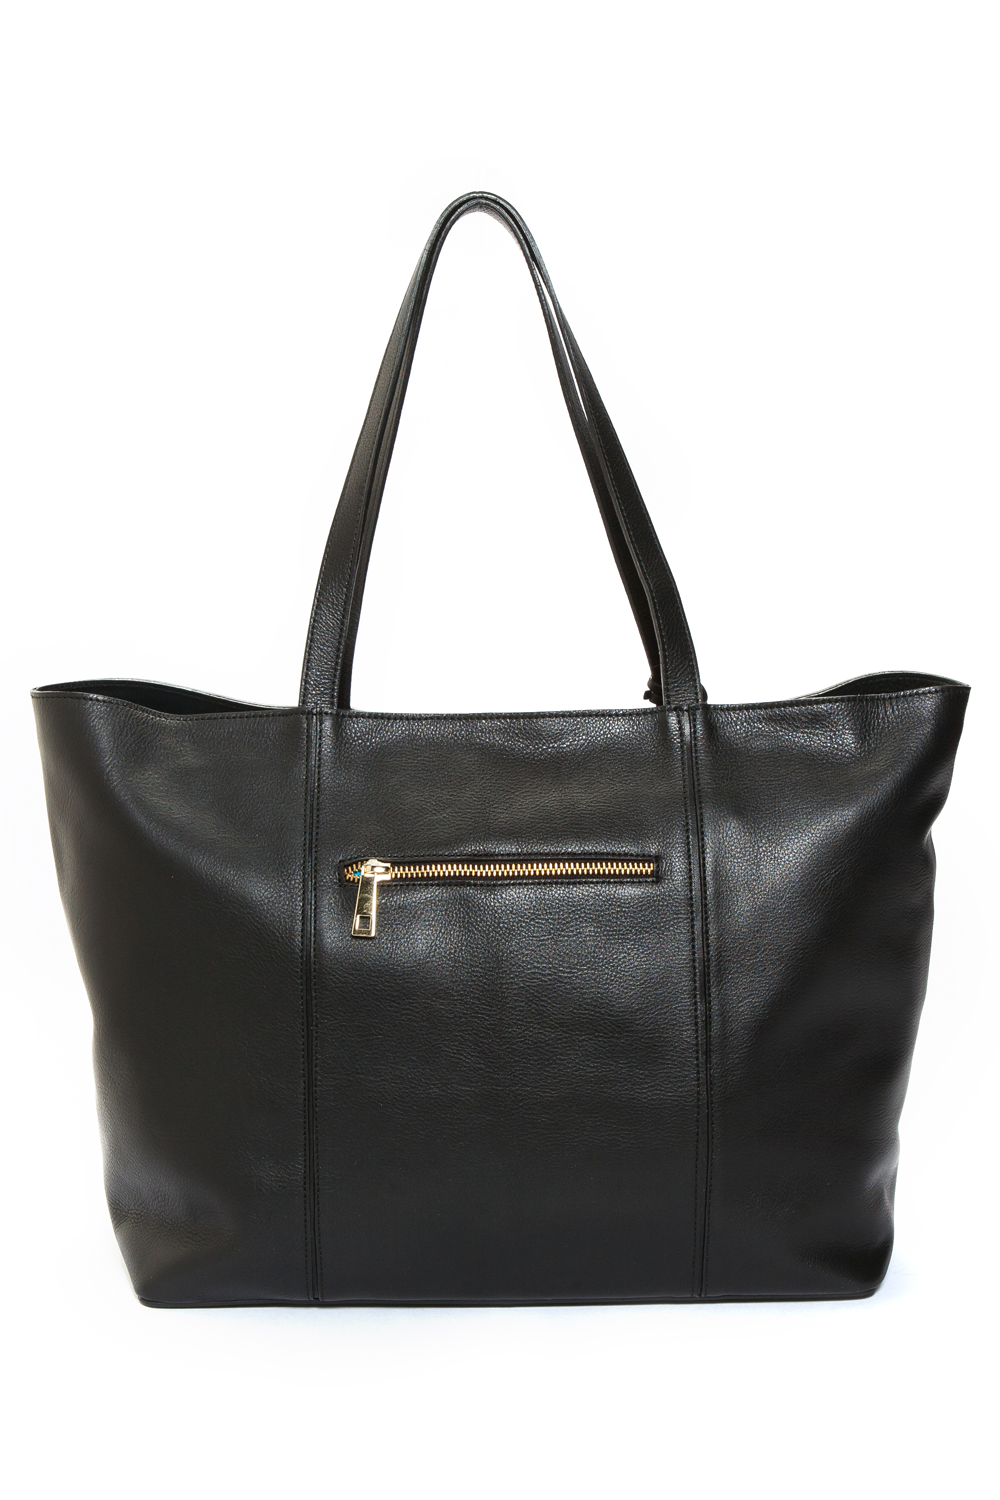 Mel Boteri | Kat Tote | Black Textured Leather | Back